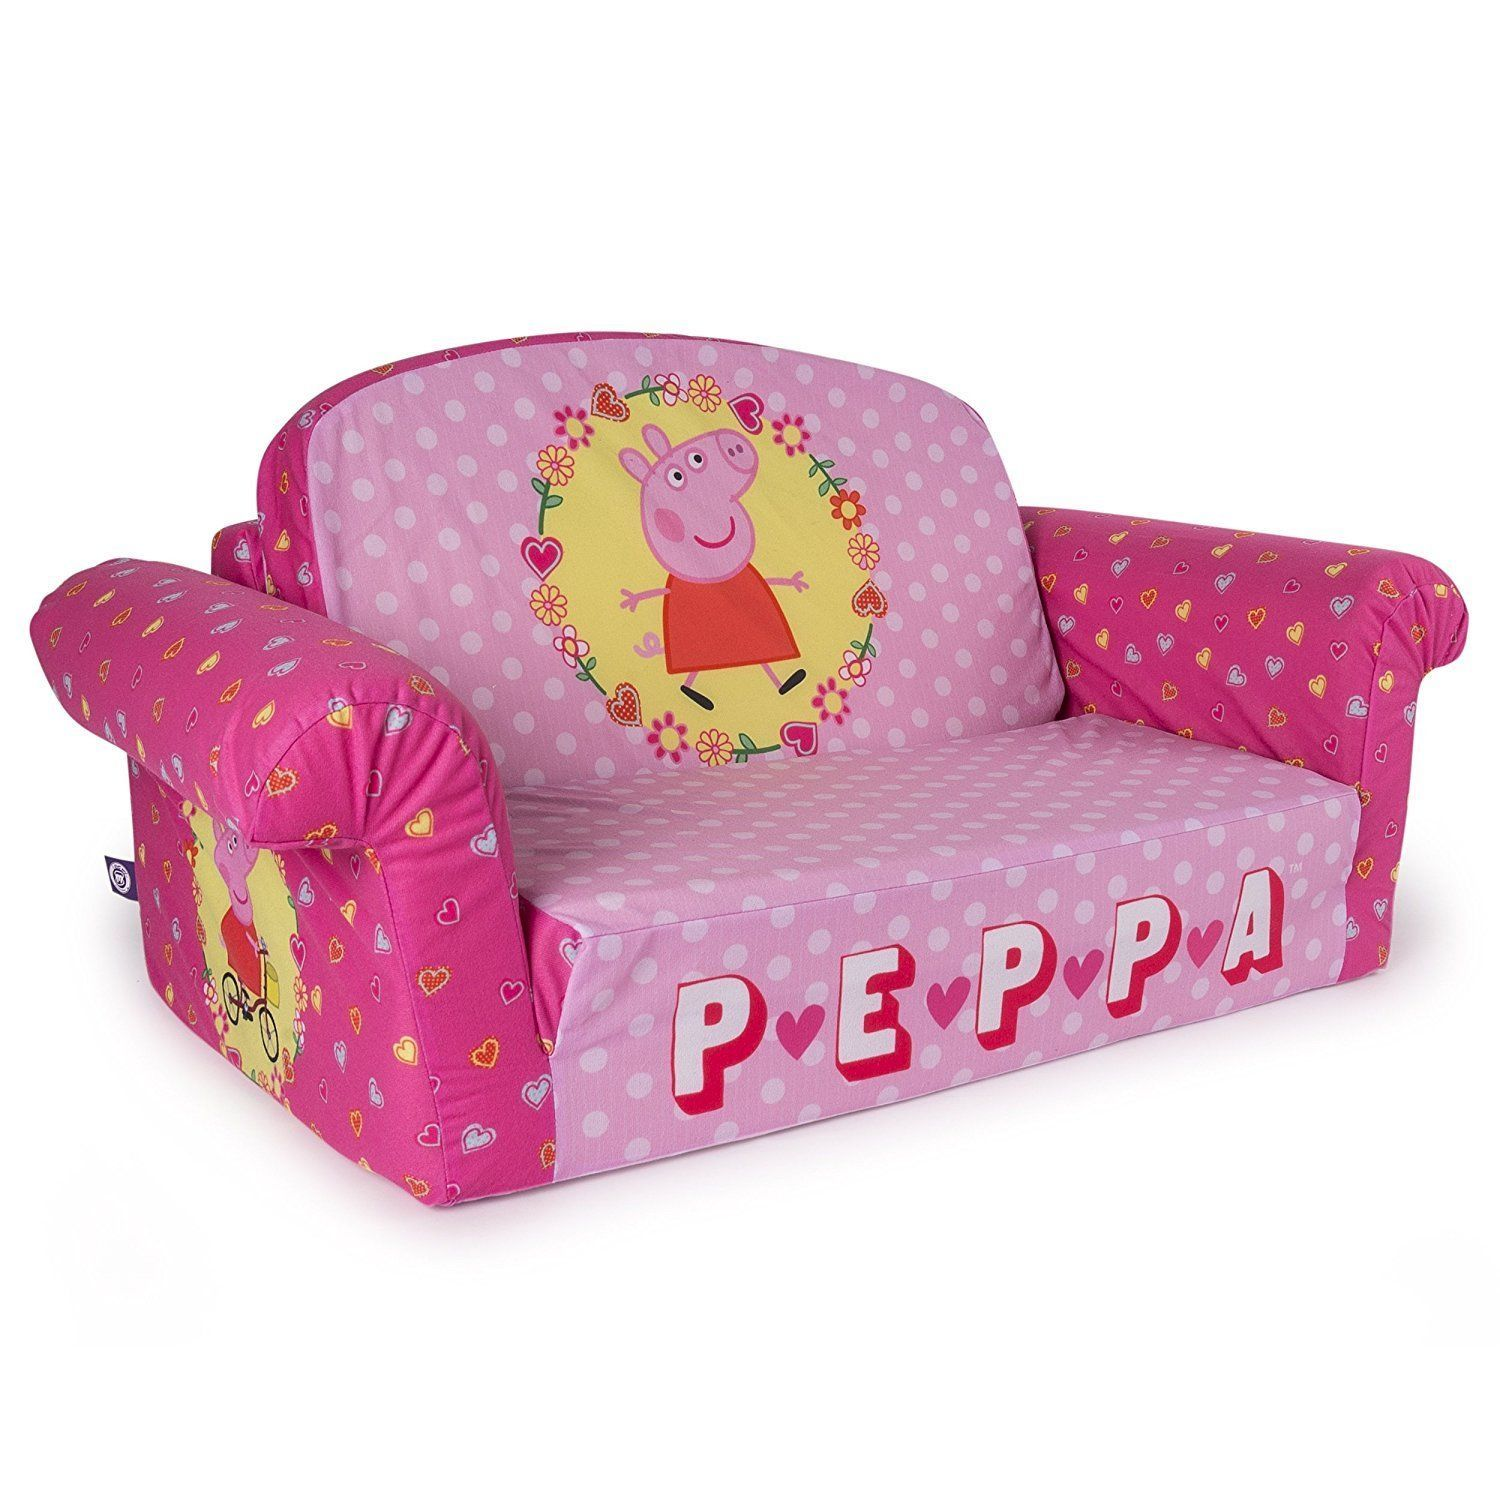 Pink Peppa Pig Plush Kids Chair Fold Out Padded Sofa Bed Lounge